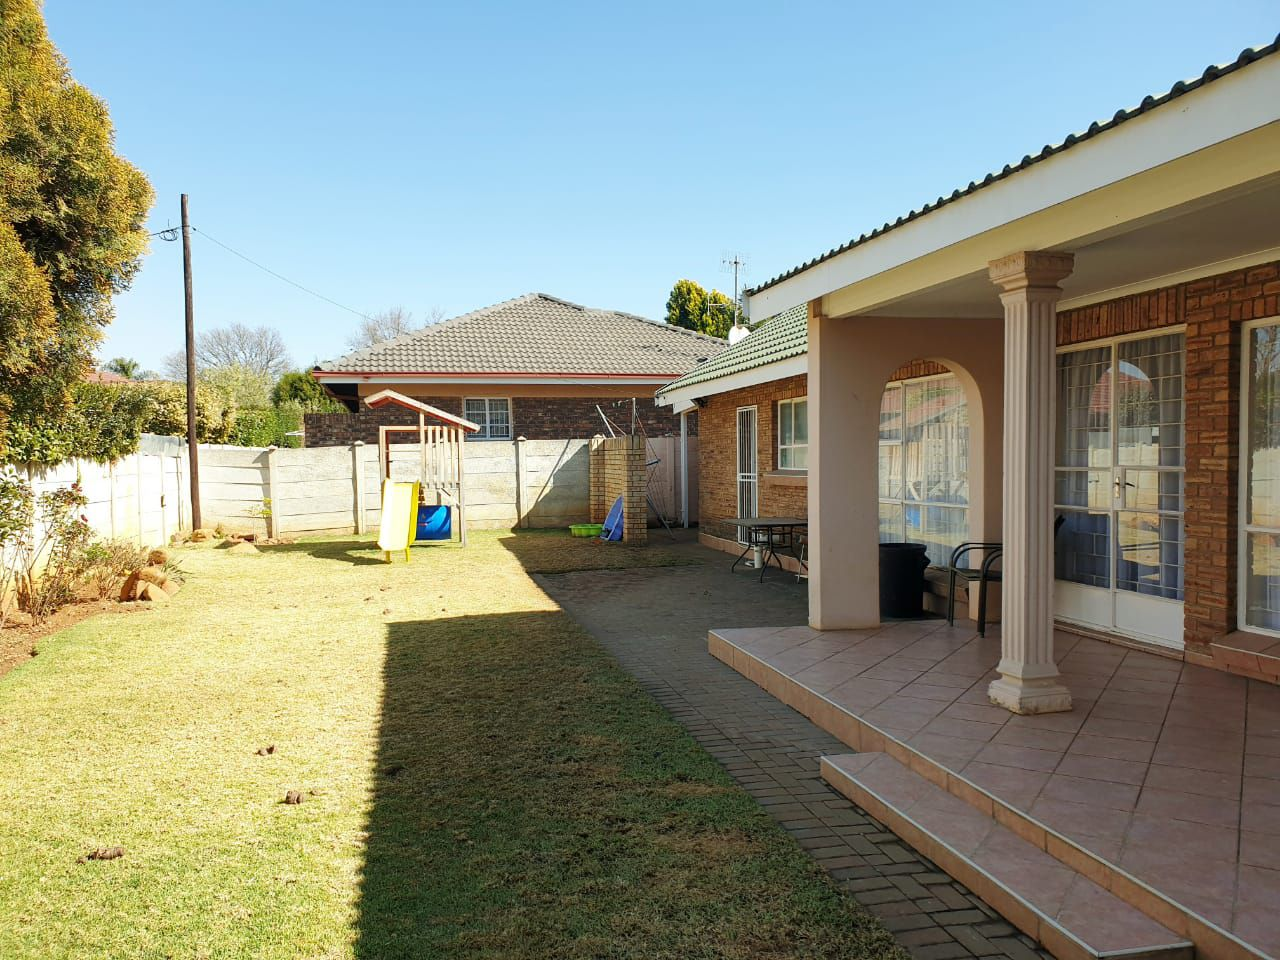 House in Kanonierspark - WhatsApp Image 2019-07-15 at 12.11.31.jpeg